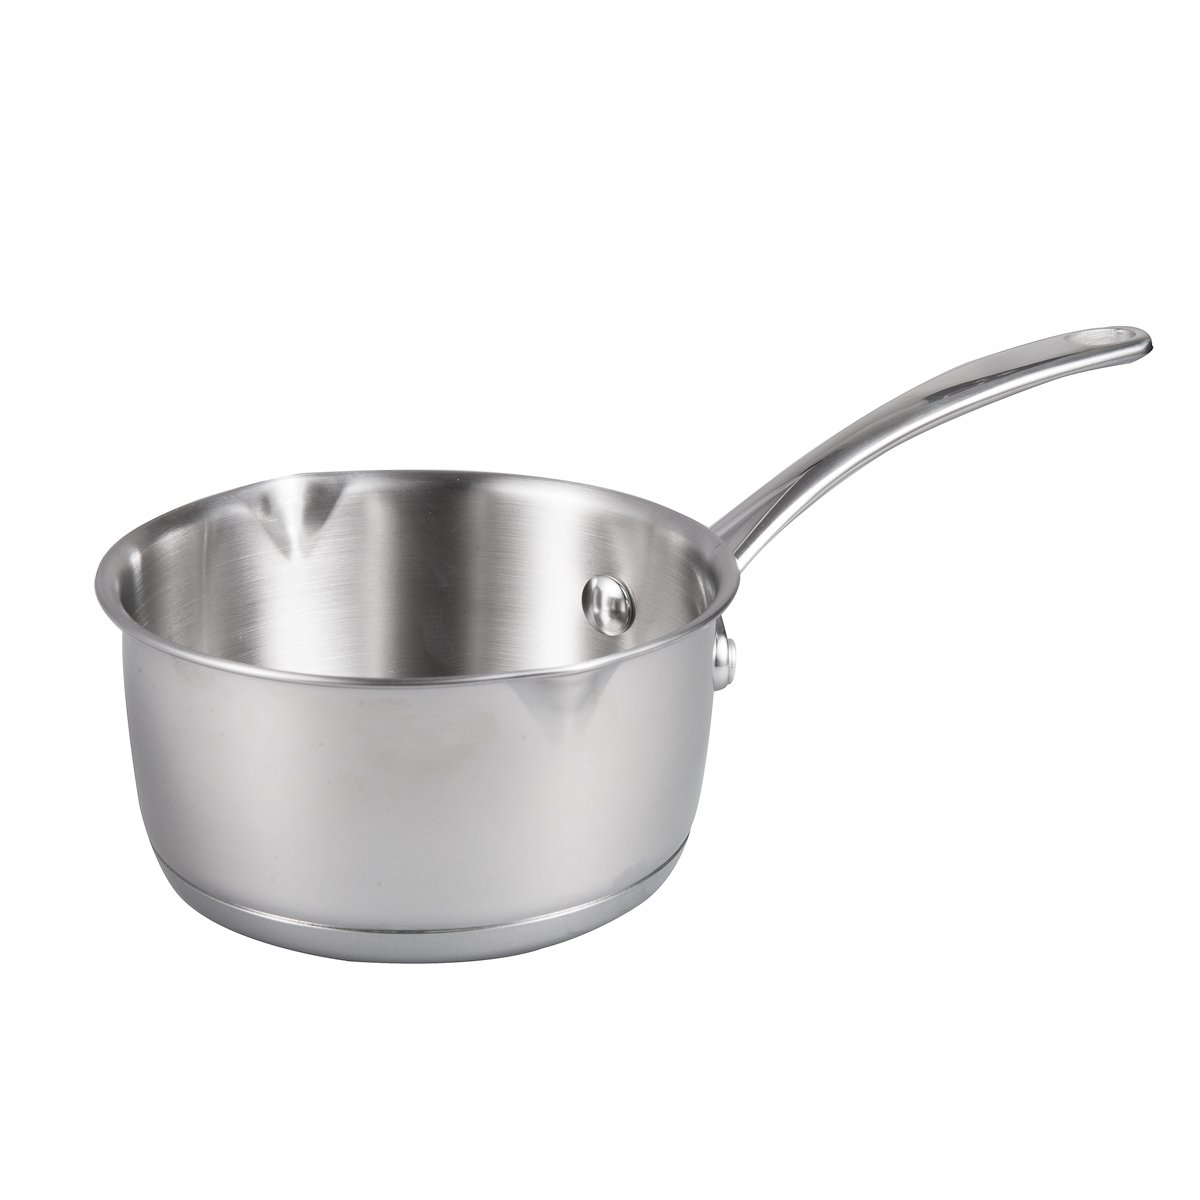 IMEEA (17oz/500ml Heavy Duty 18/10 Tri-Ply Stainless Steel Butter Warmer Pan with Dual Pour Spouts, 0.5-Quart by IMEEA (Image #6)